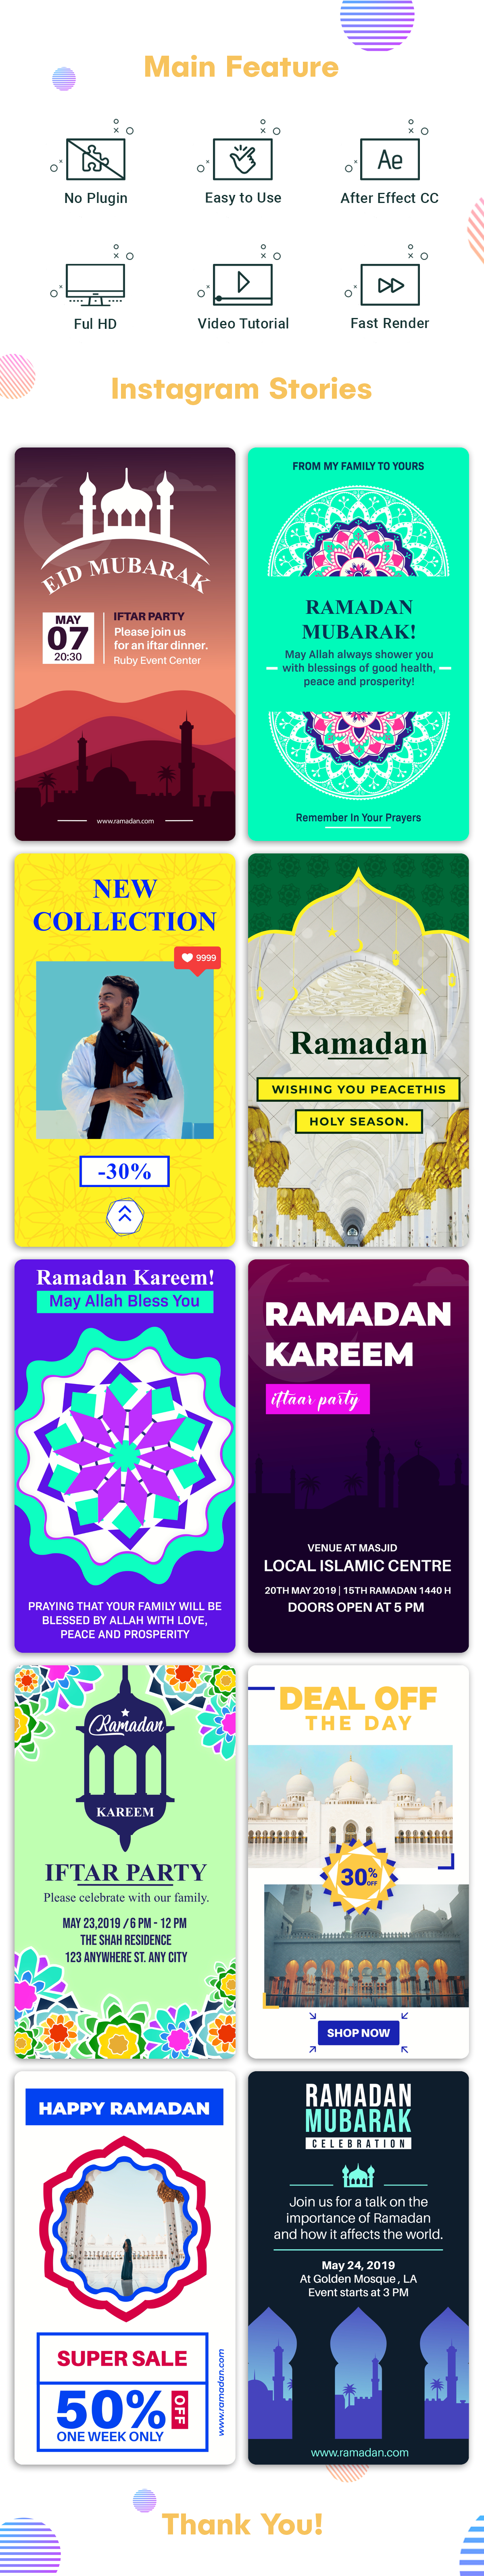 Ramadan Instagram Stories Intro